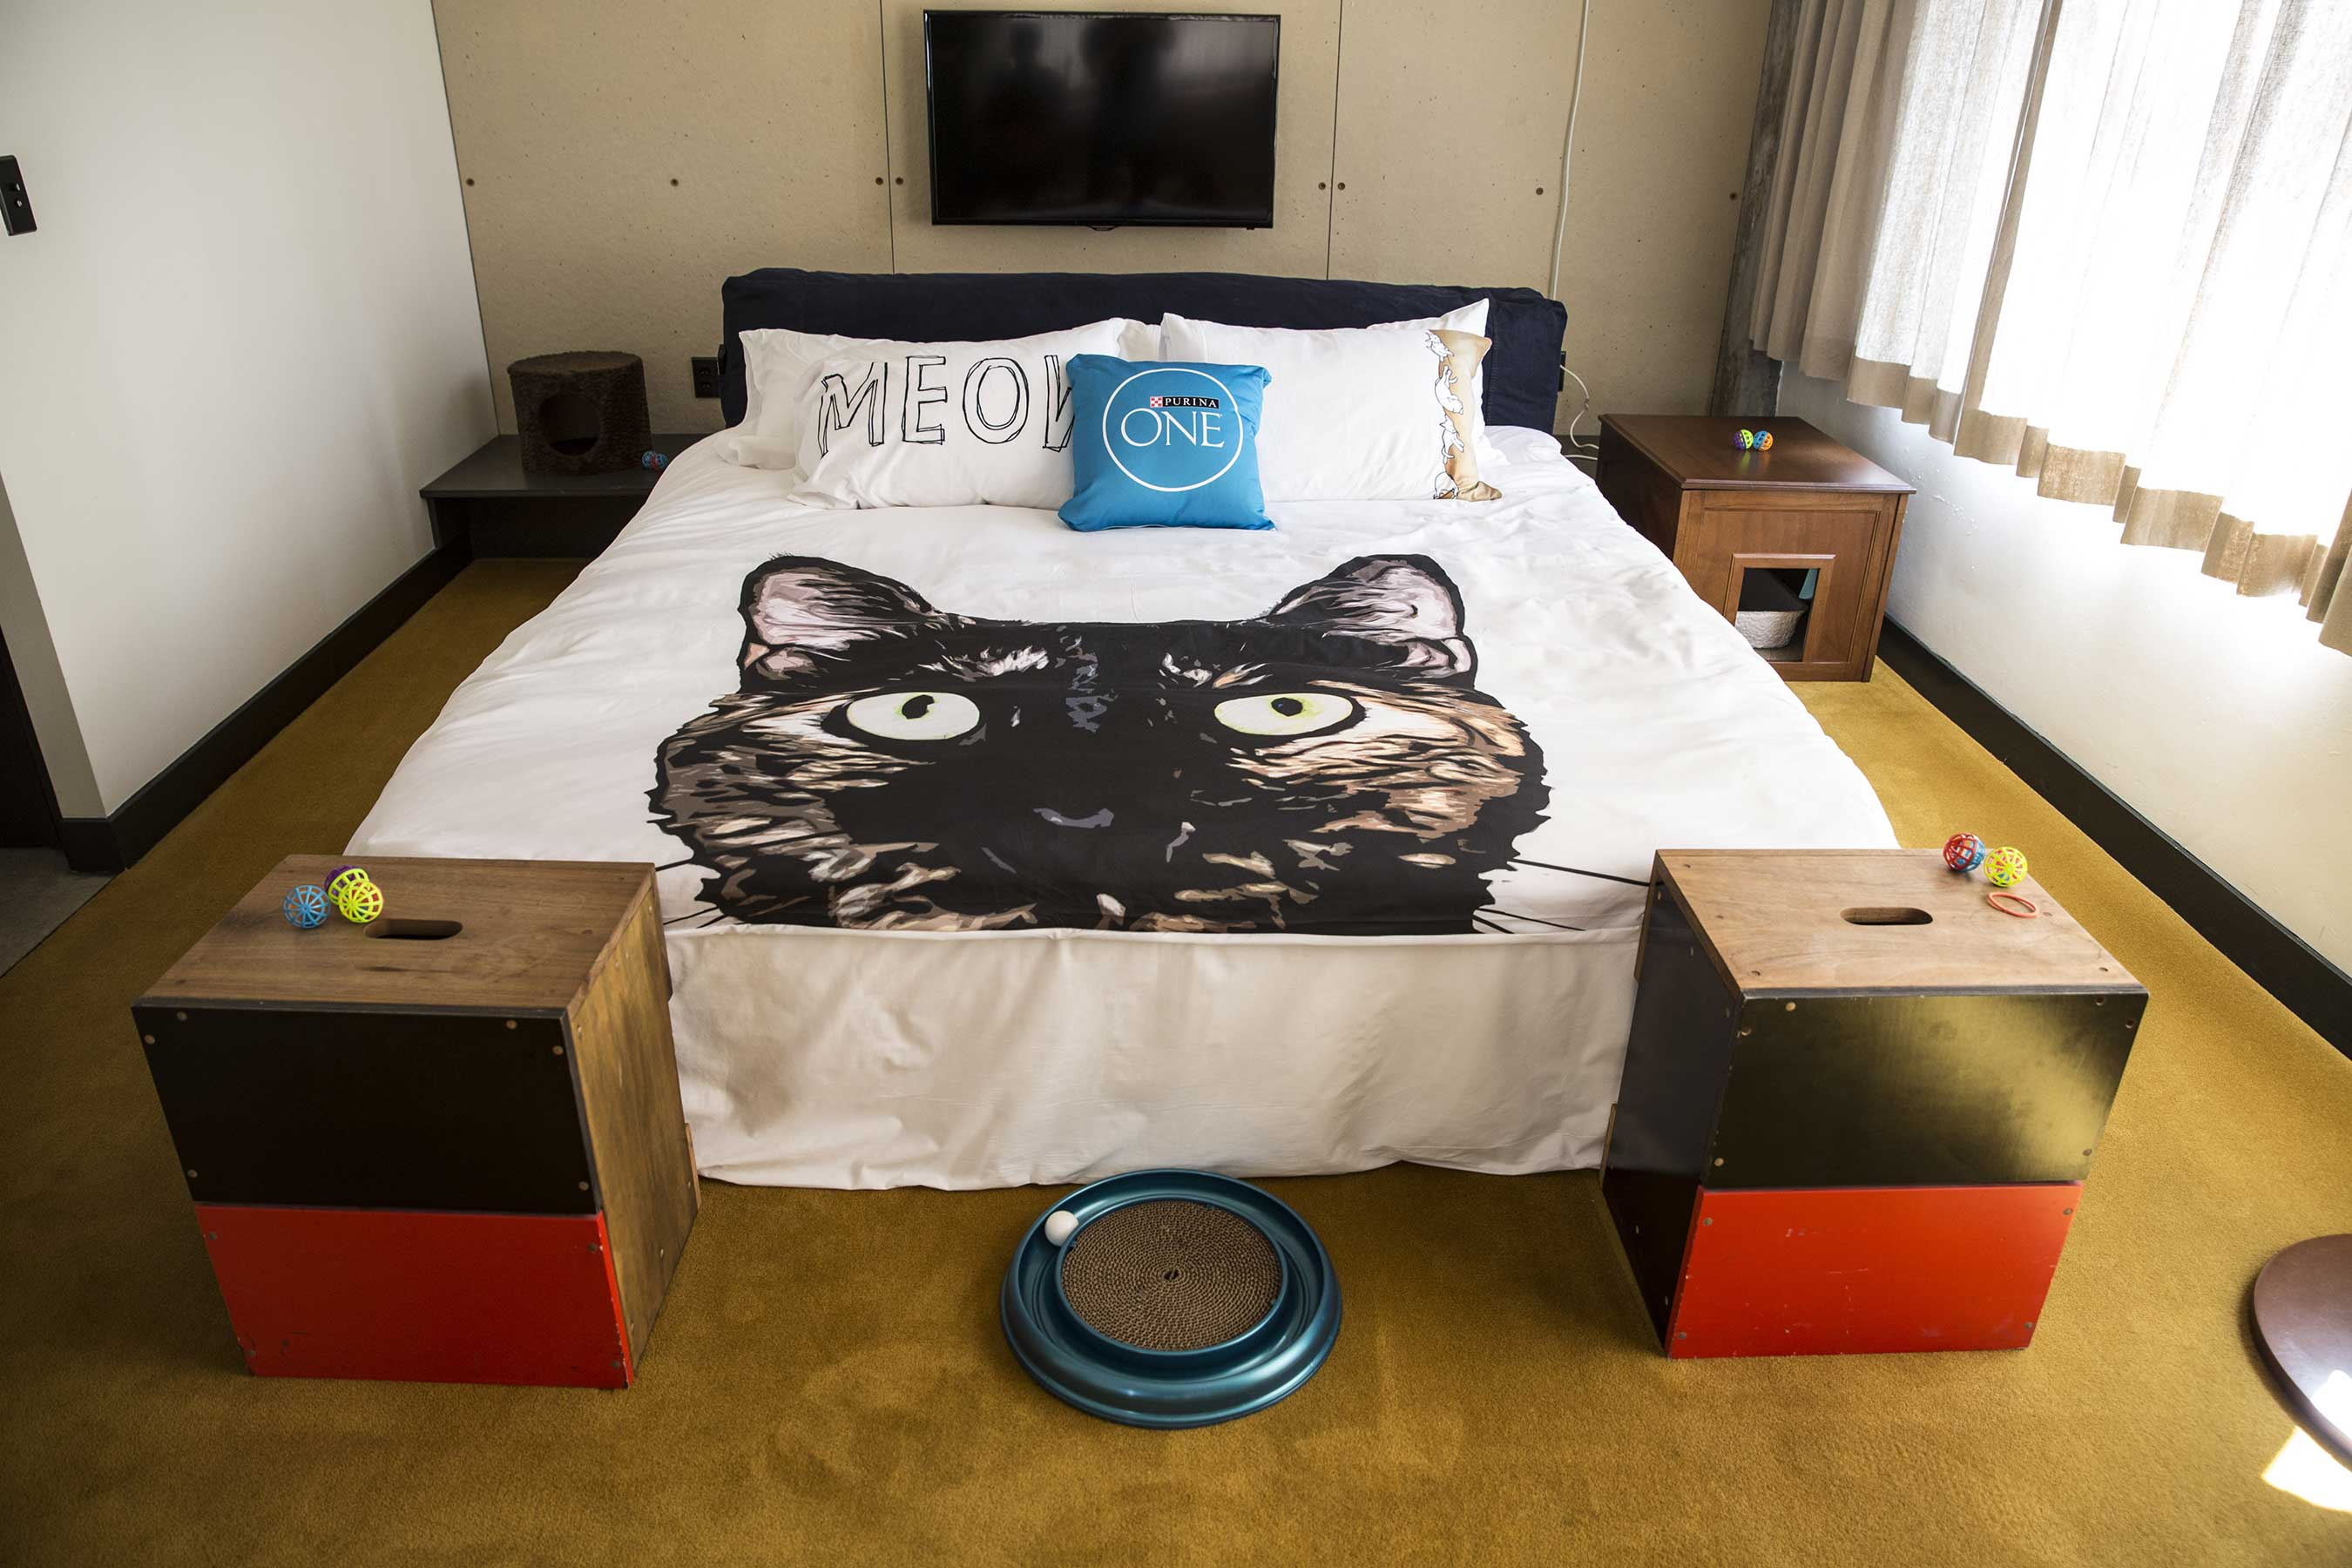 Purina ONE's Whole Body Health Hotel, coinciding with CatConLA, will immerse guests in a hotel environment well-appointed with cat-themed amenities and cat health experts.